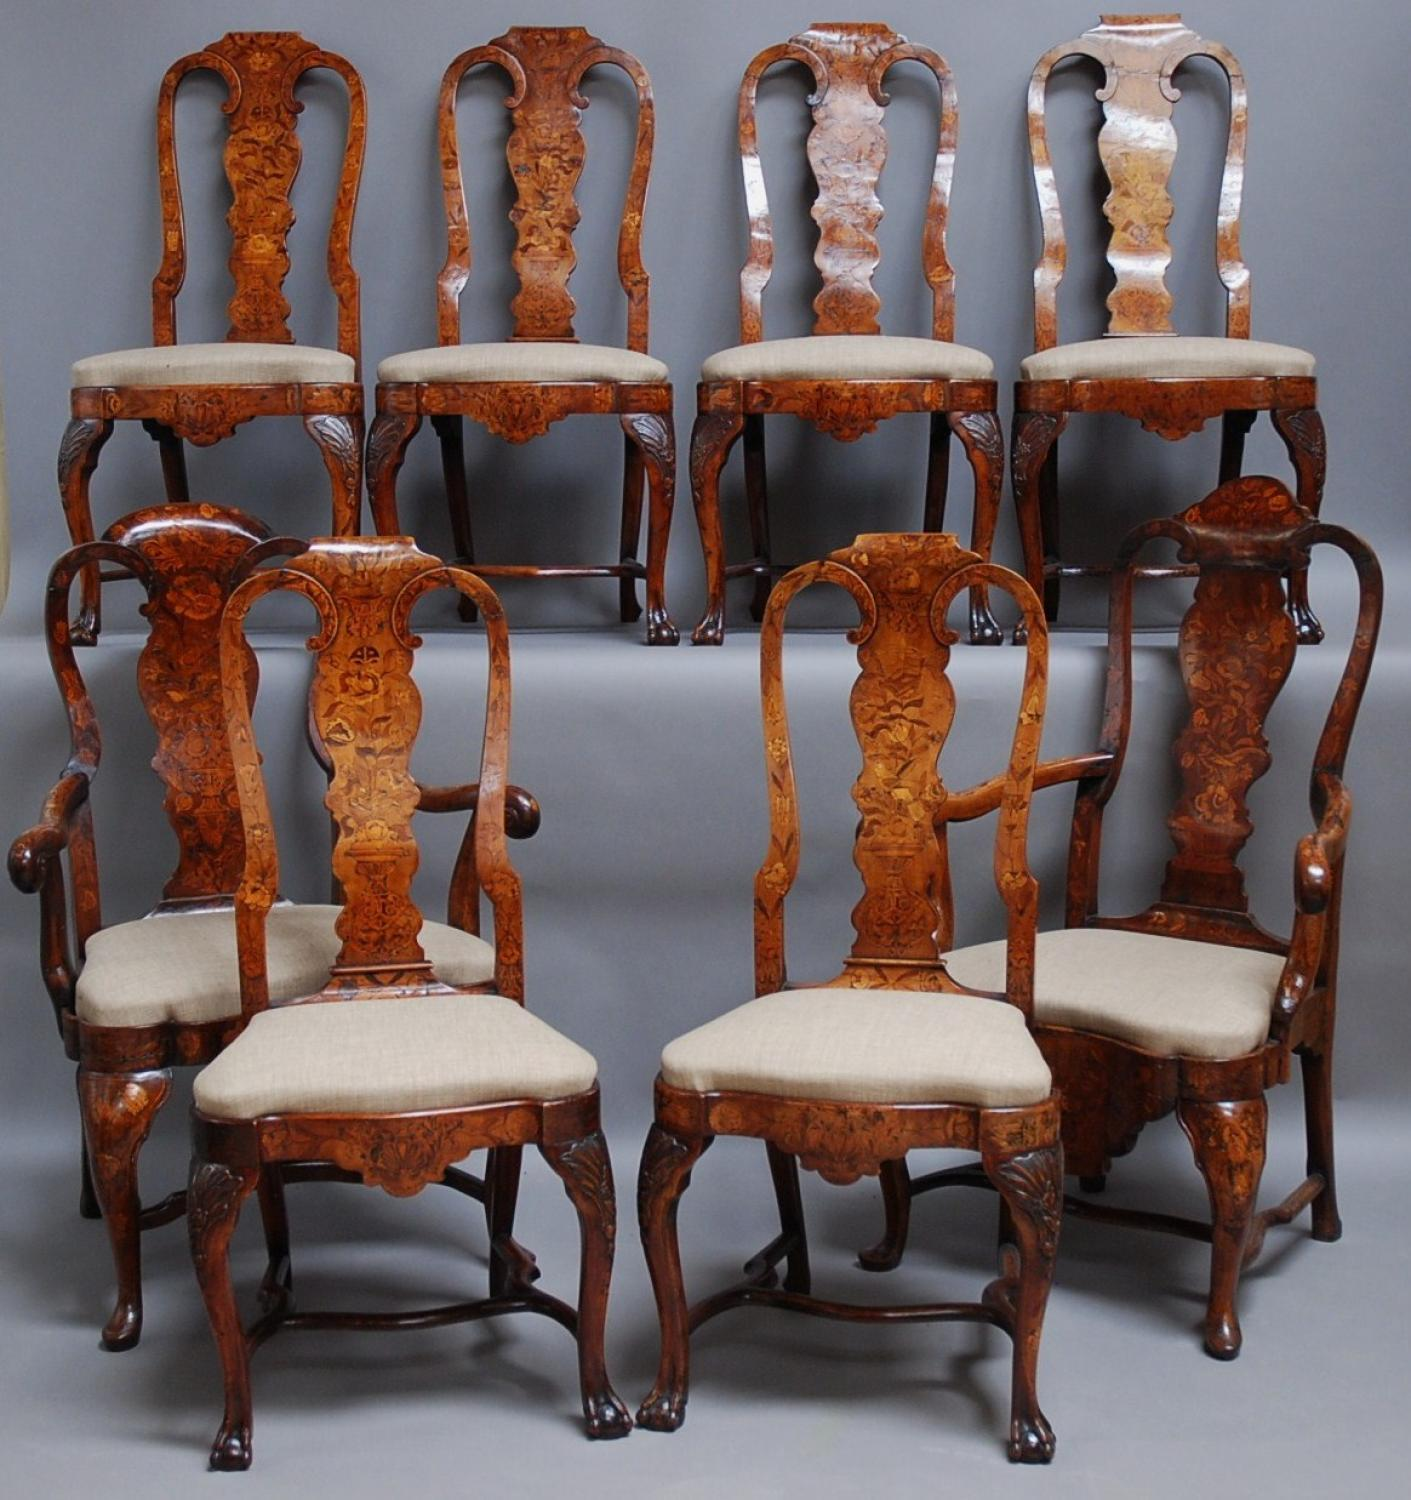 Matched set of 18thc Dutch marquetry chairs